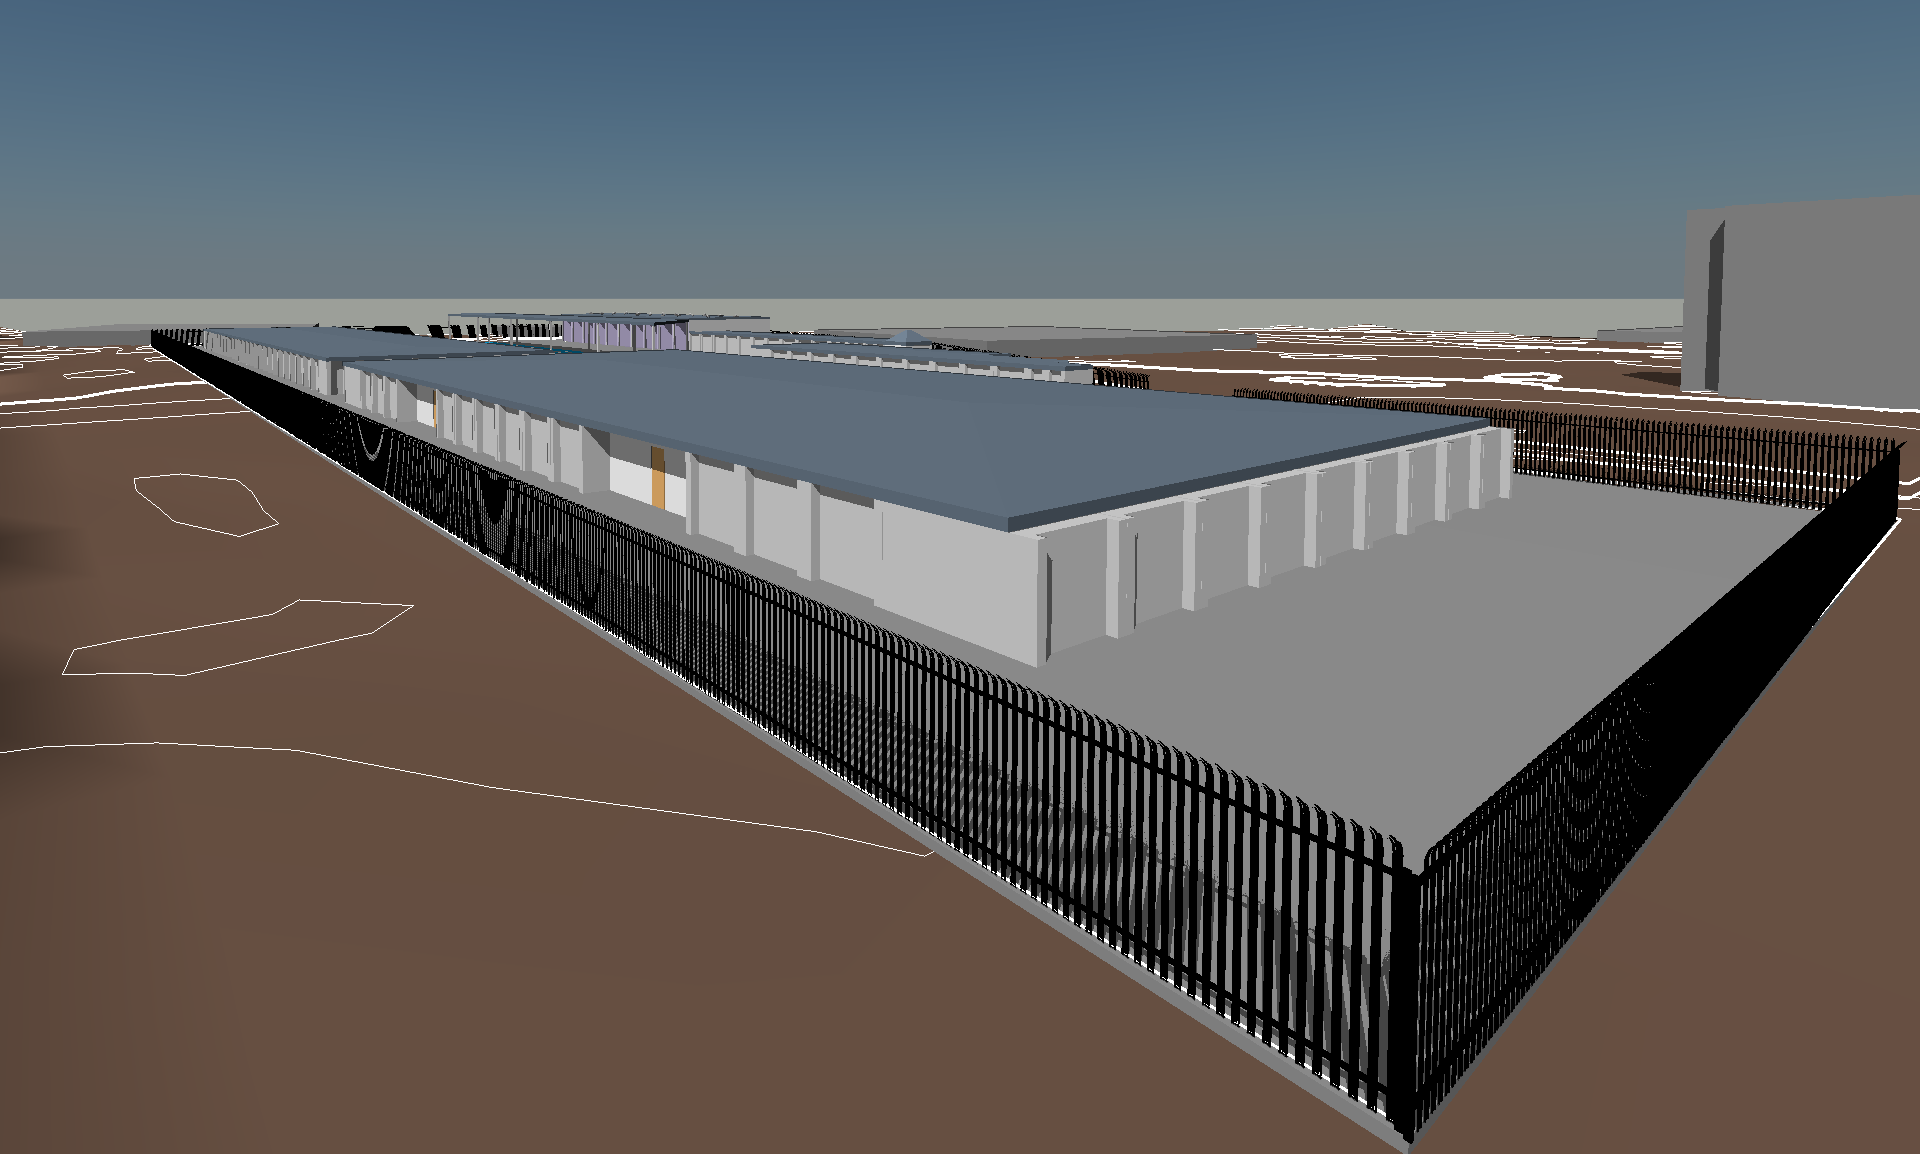 Storage Unit Facility Design in Revit